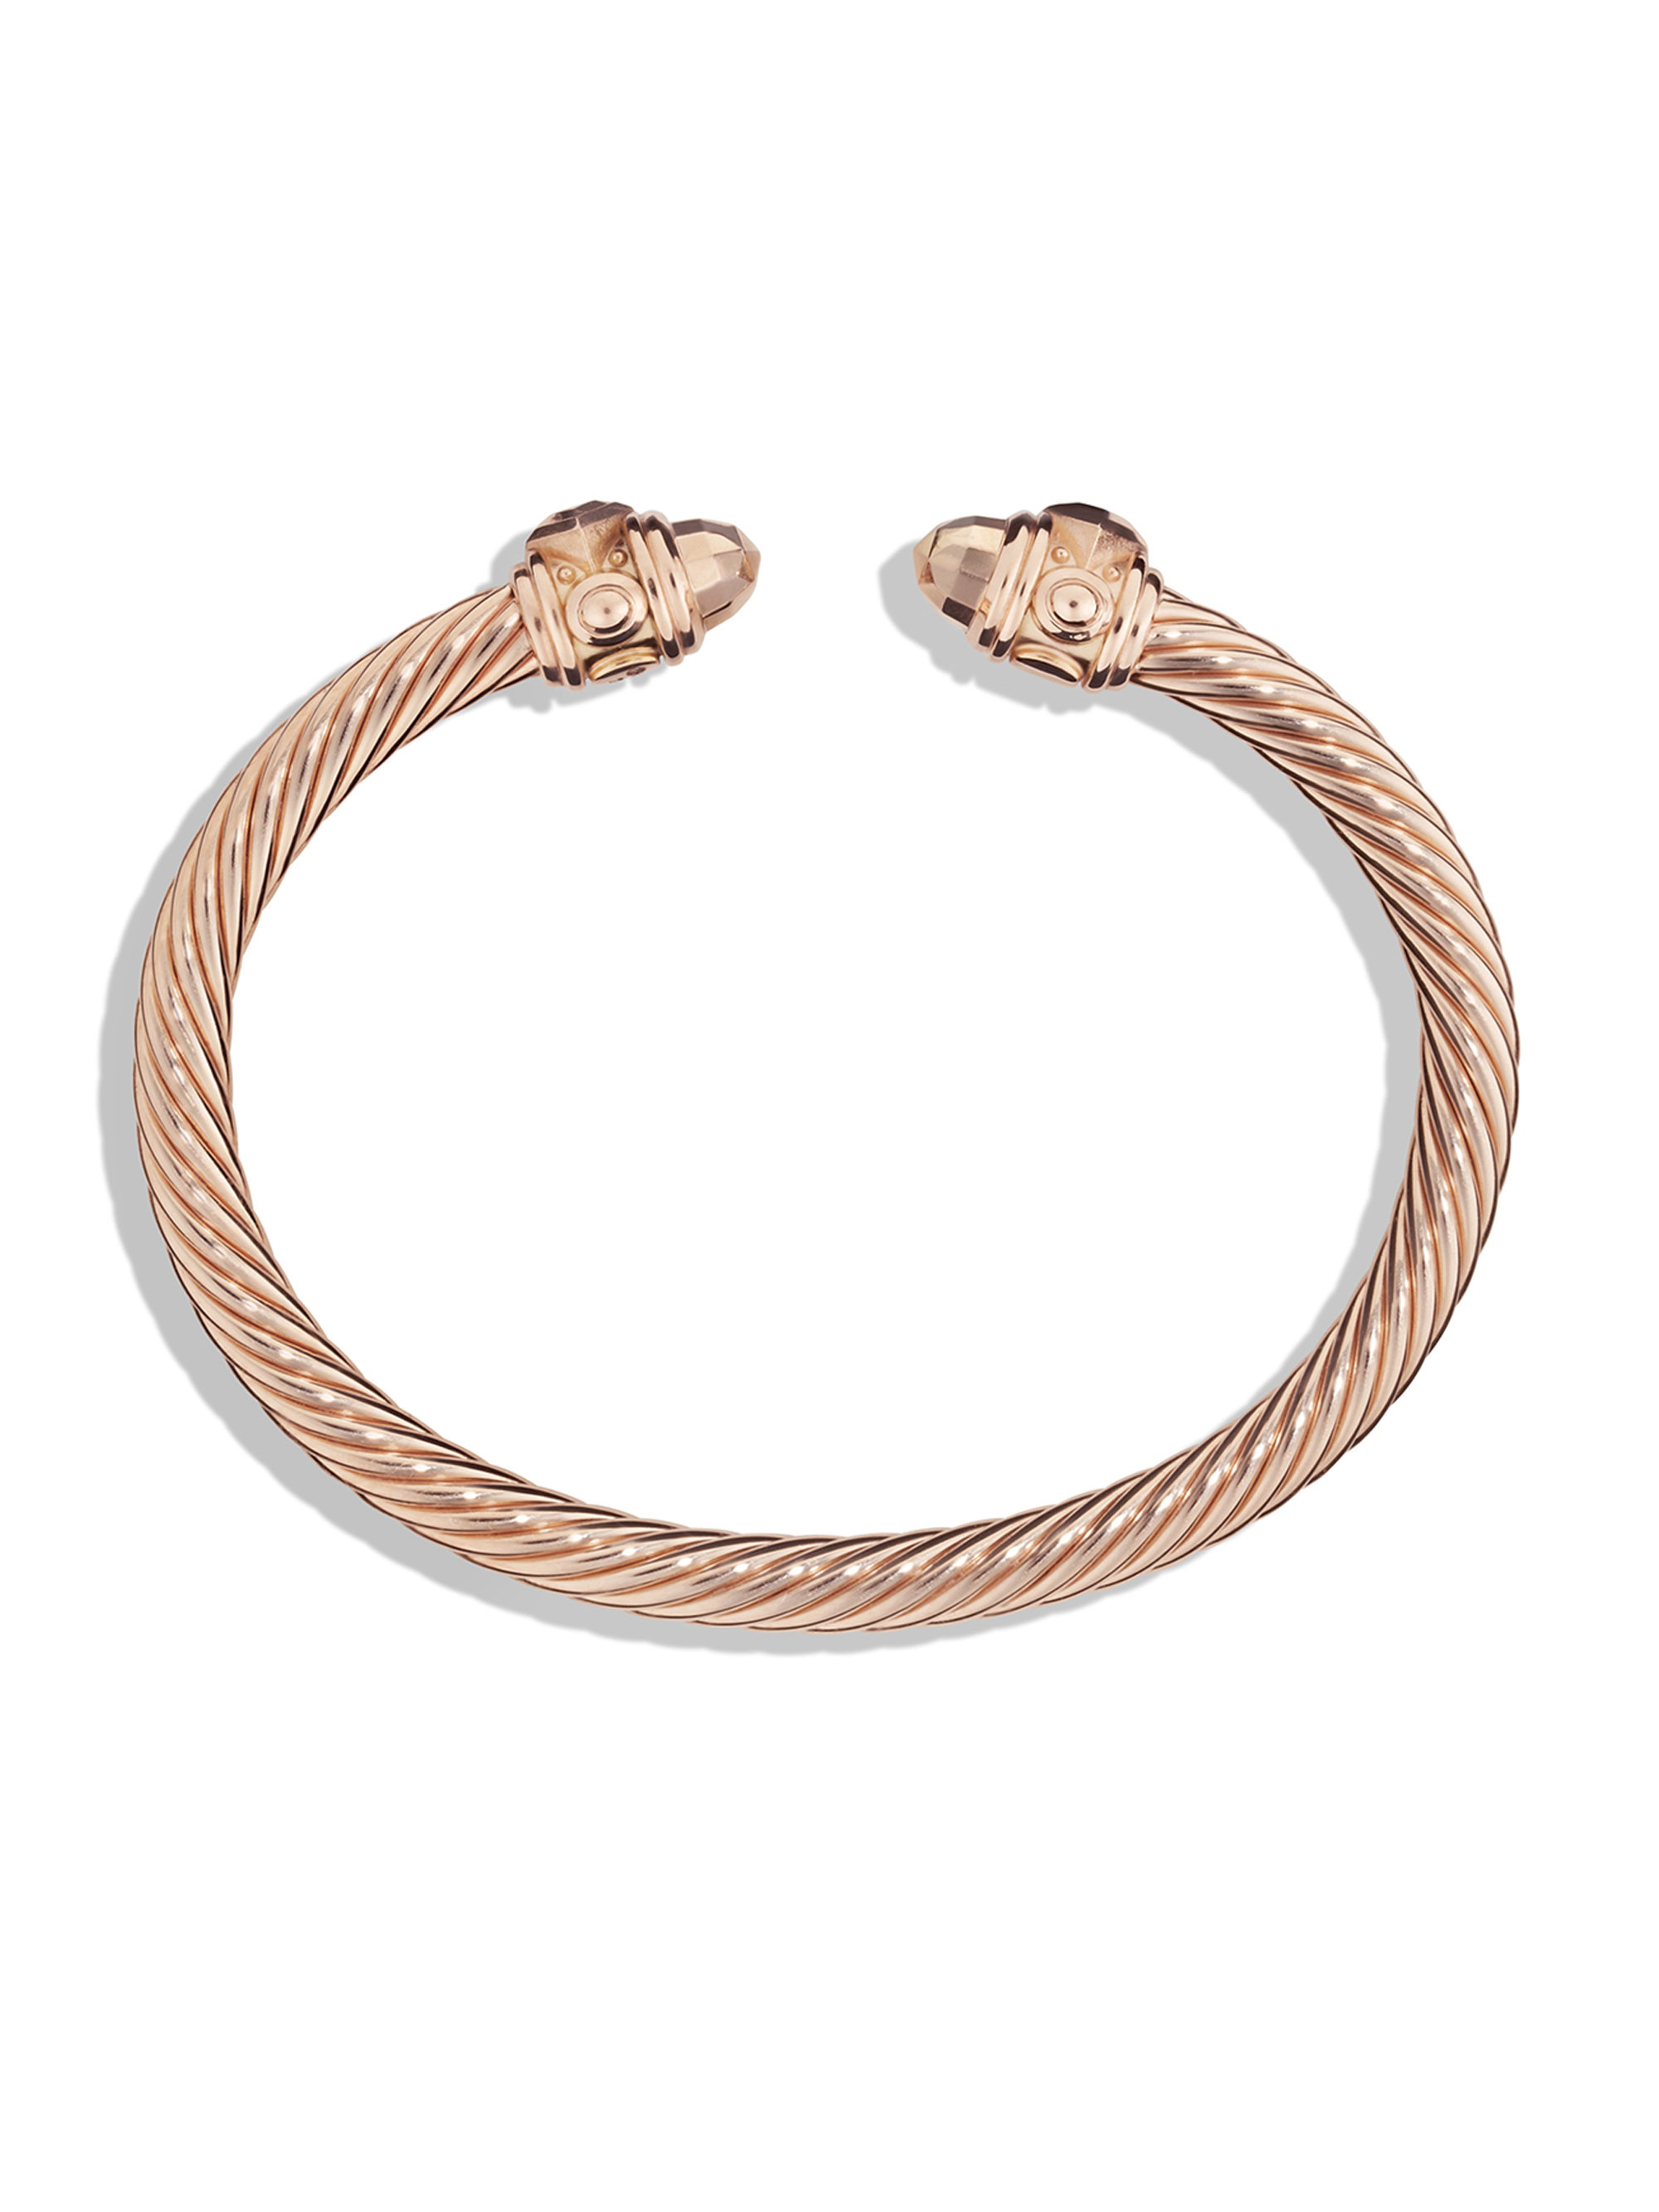 David yurman renaissance bracelet in 18k rose gold in pink for David yurman like bracelets